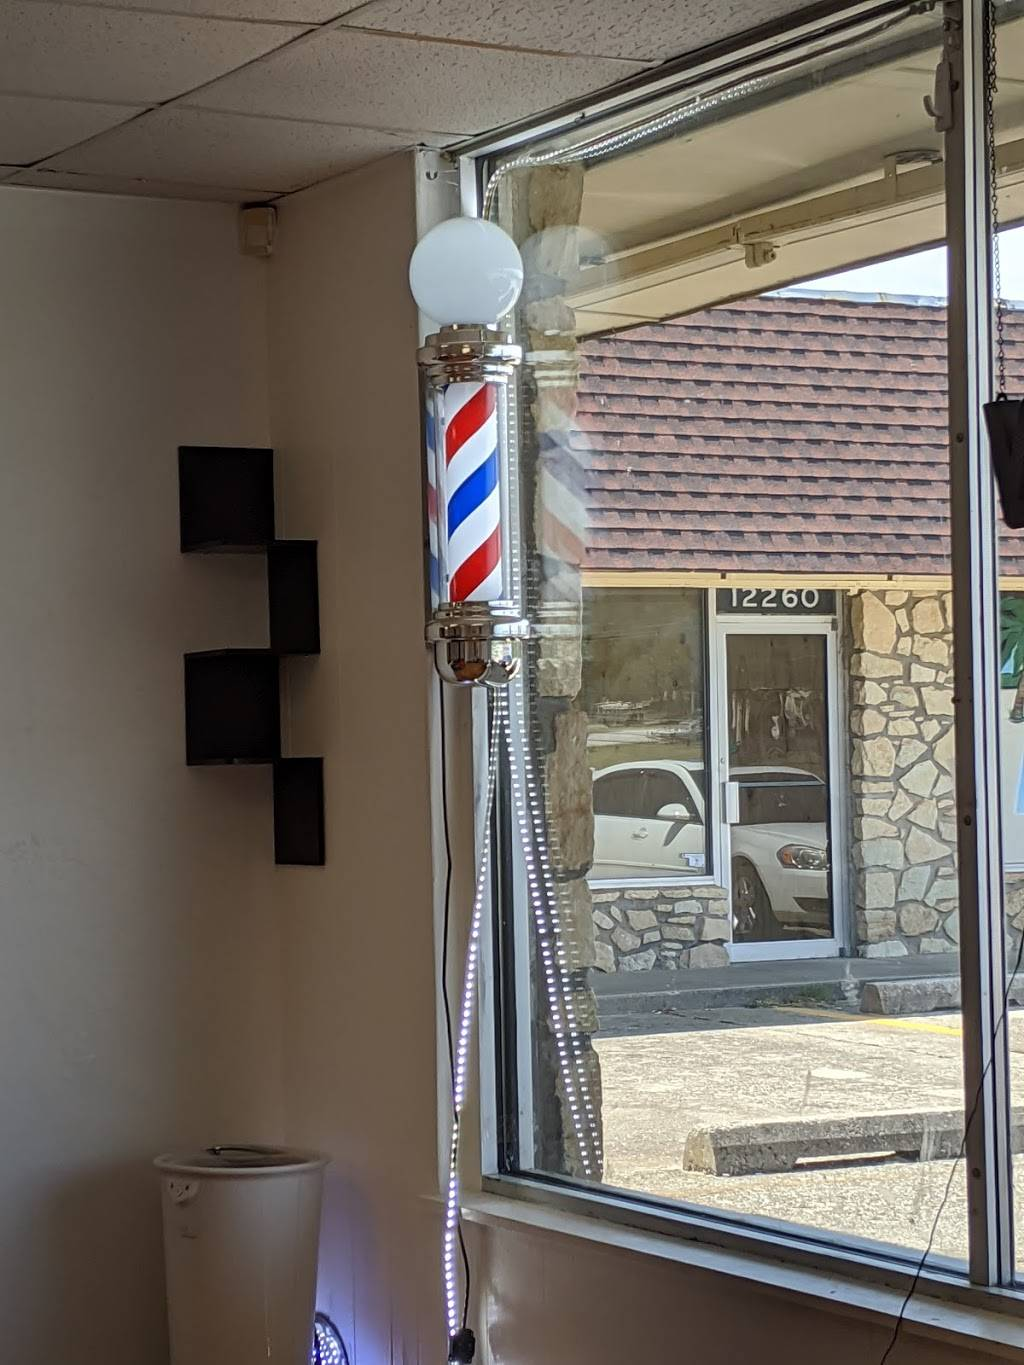 The After Hour Barbershop - hair care  | Photo 9 of 9 | Address: 12272 NE 23rd St, Choctaw, OK 73020, USA | Phone: (405) 339-1440